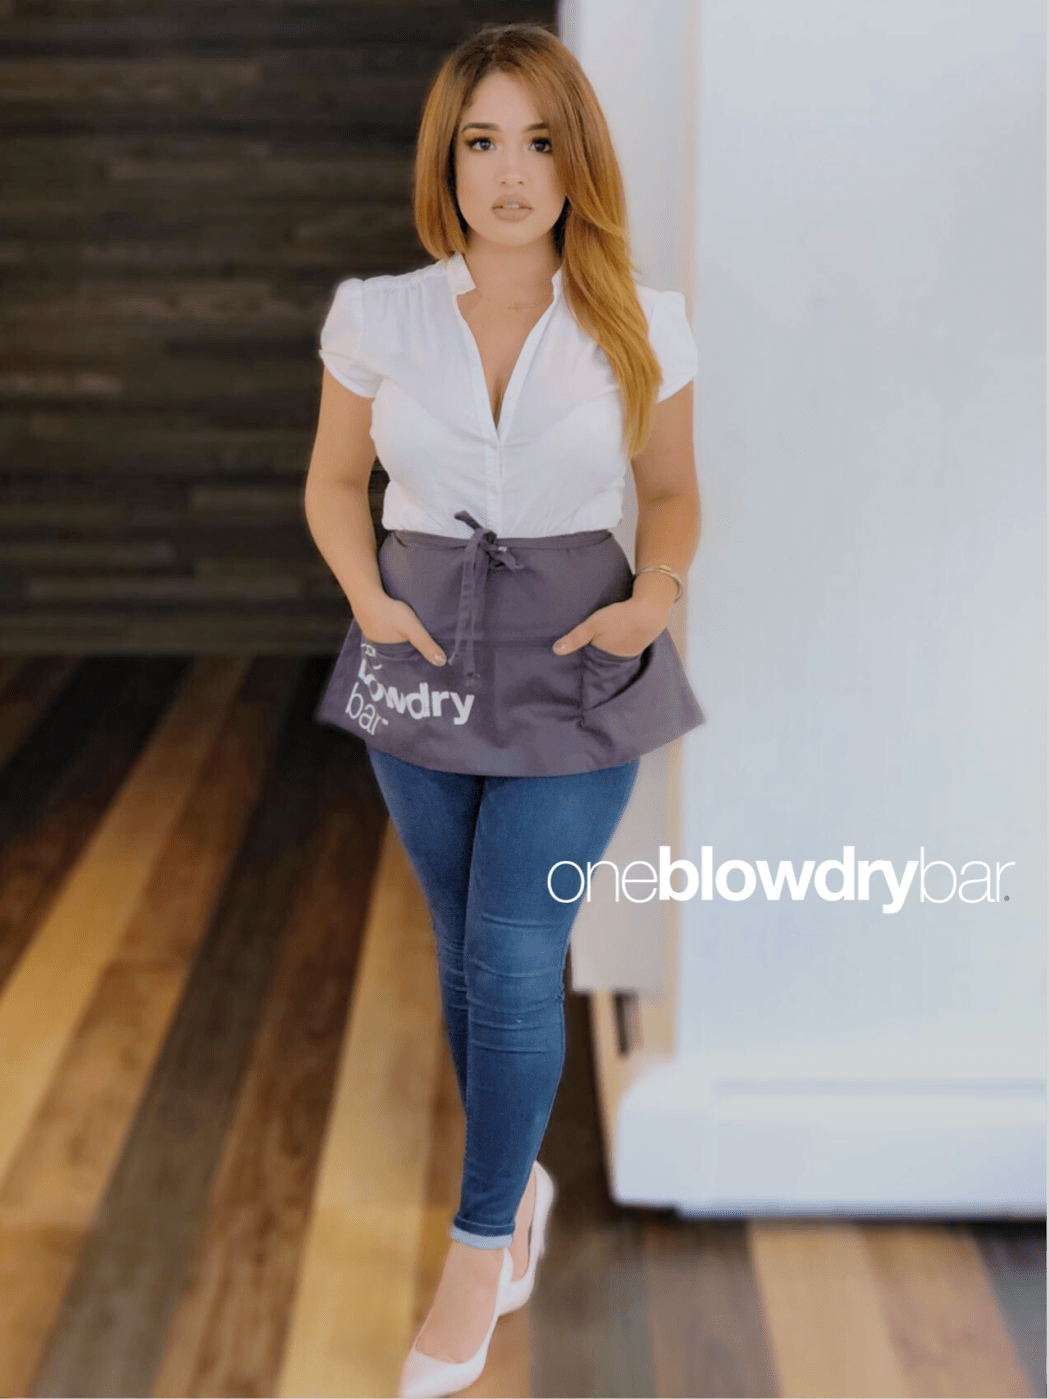 New Jersey hair stylist at Red Bank Blow dry bar